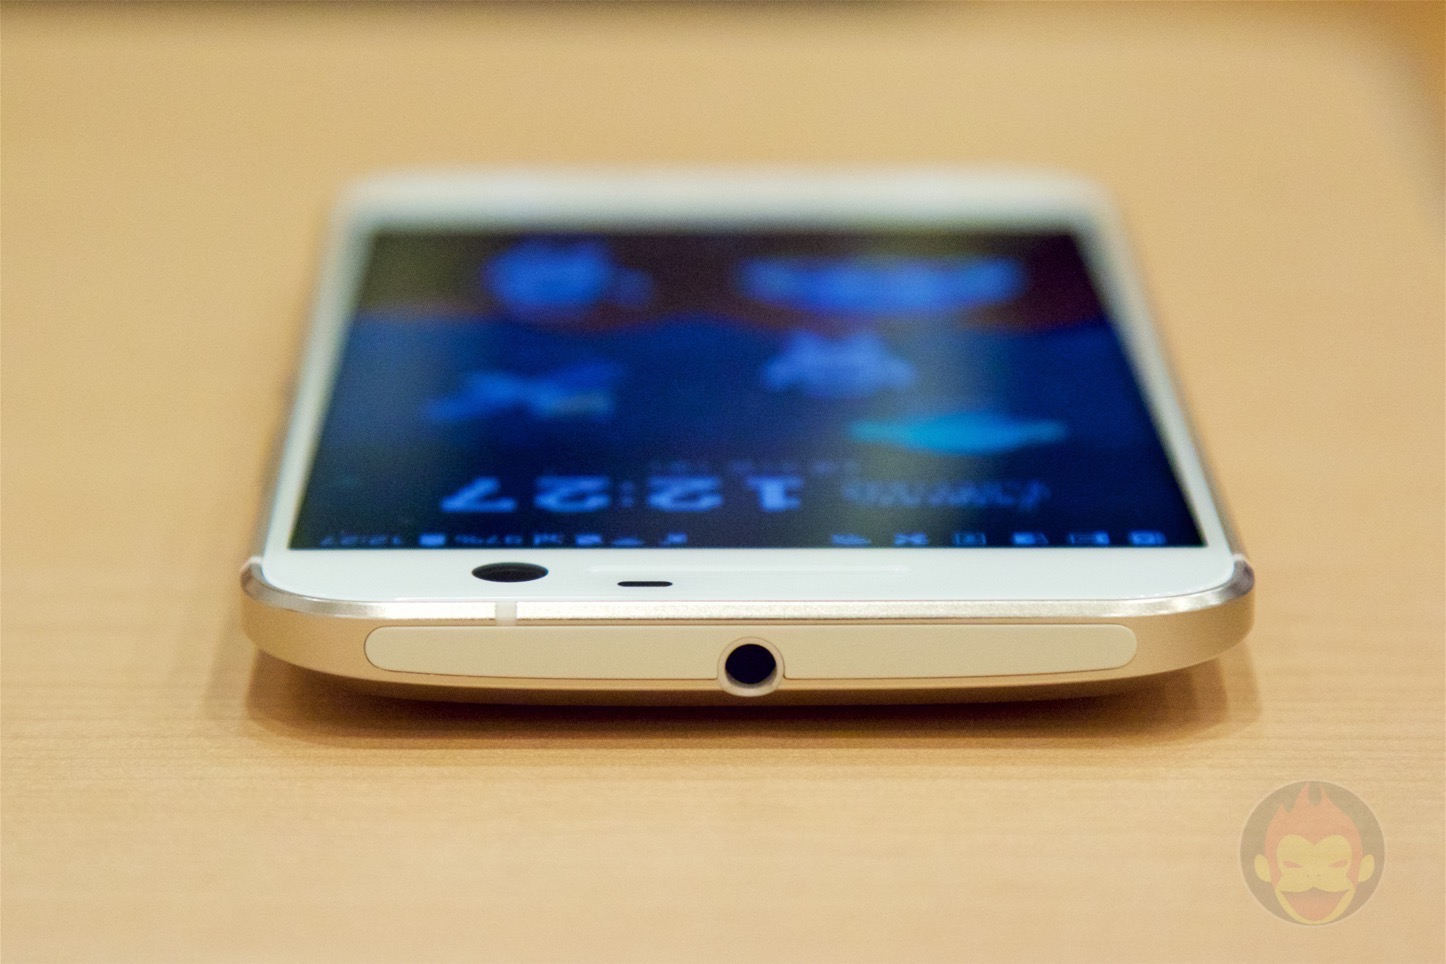 HTC-10-Hands-On-02.jpg